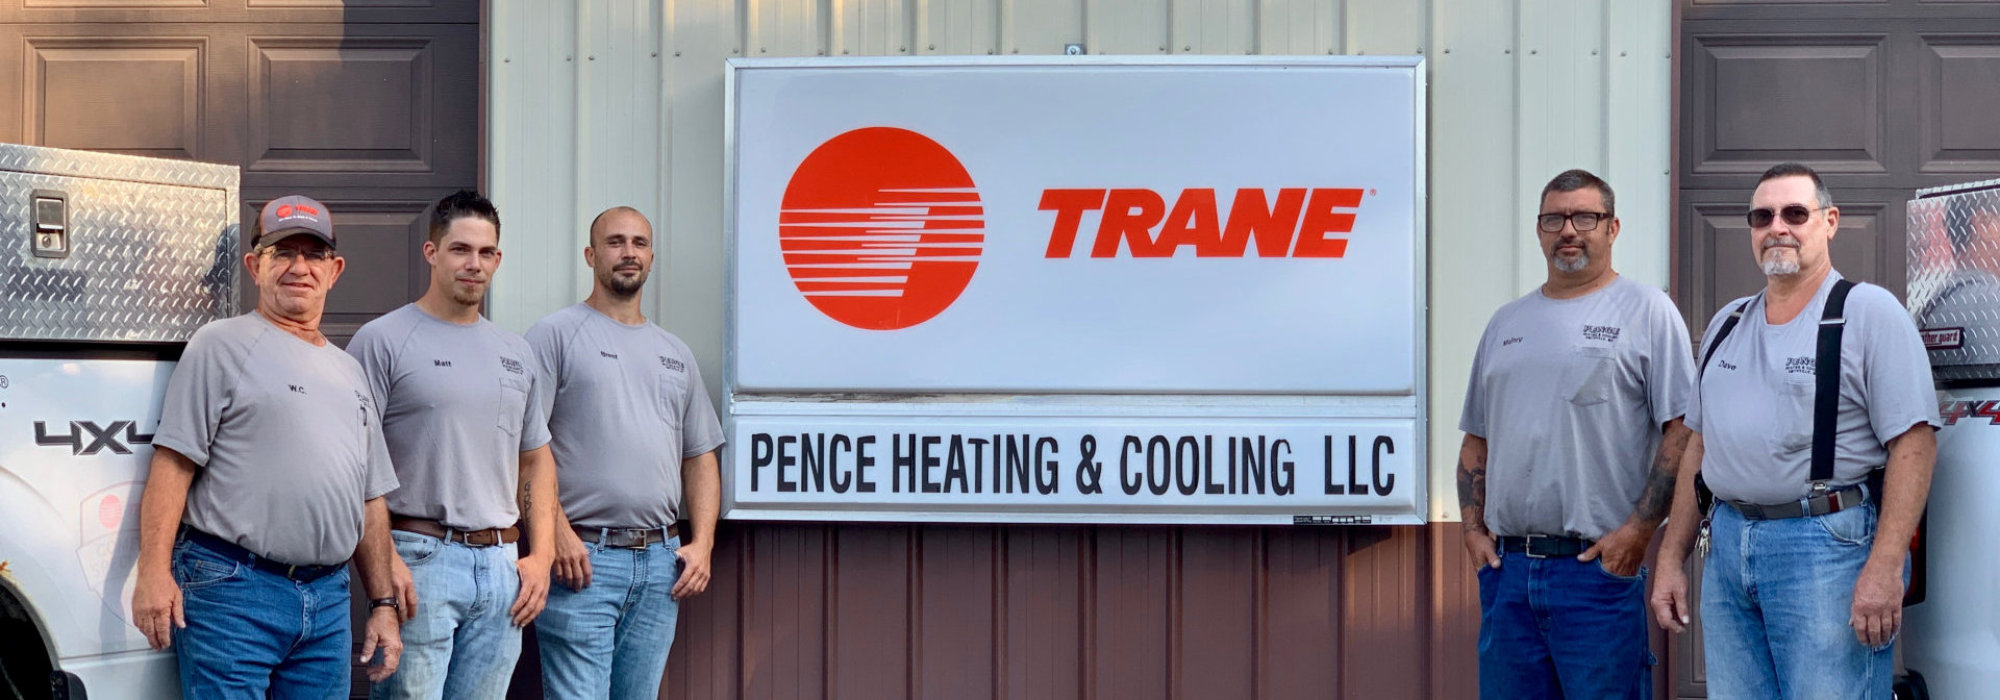 pence heating and cooling services smithville mo